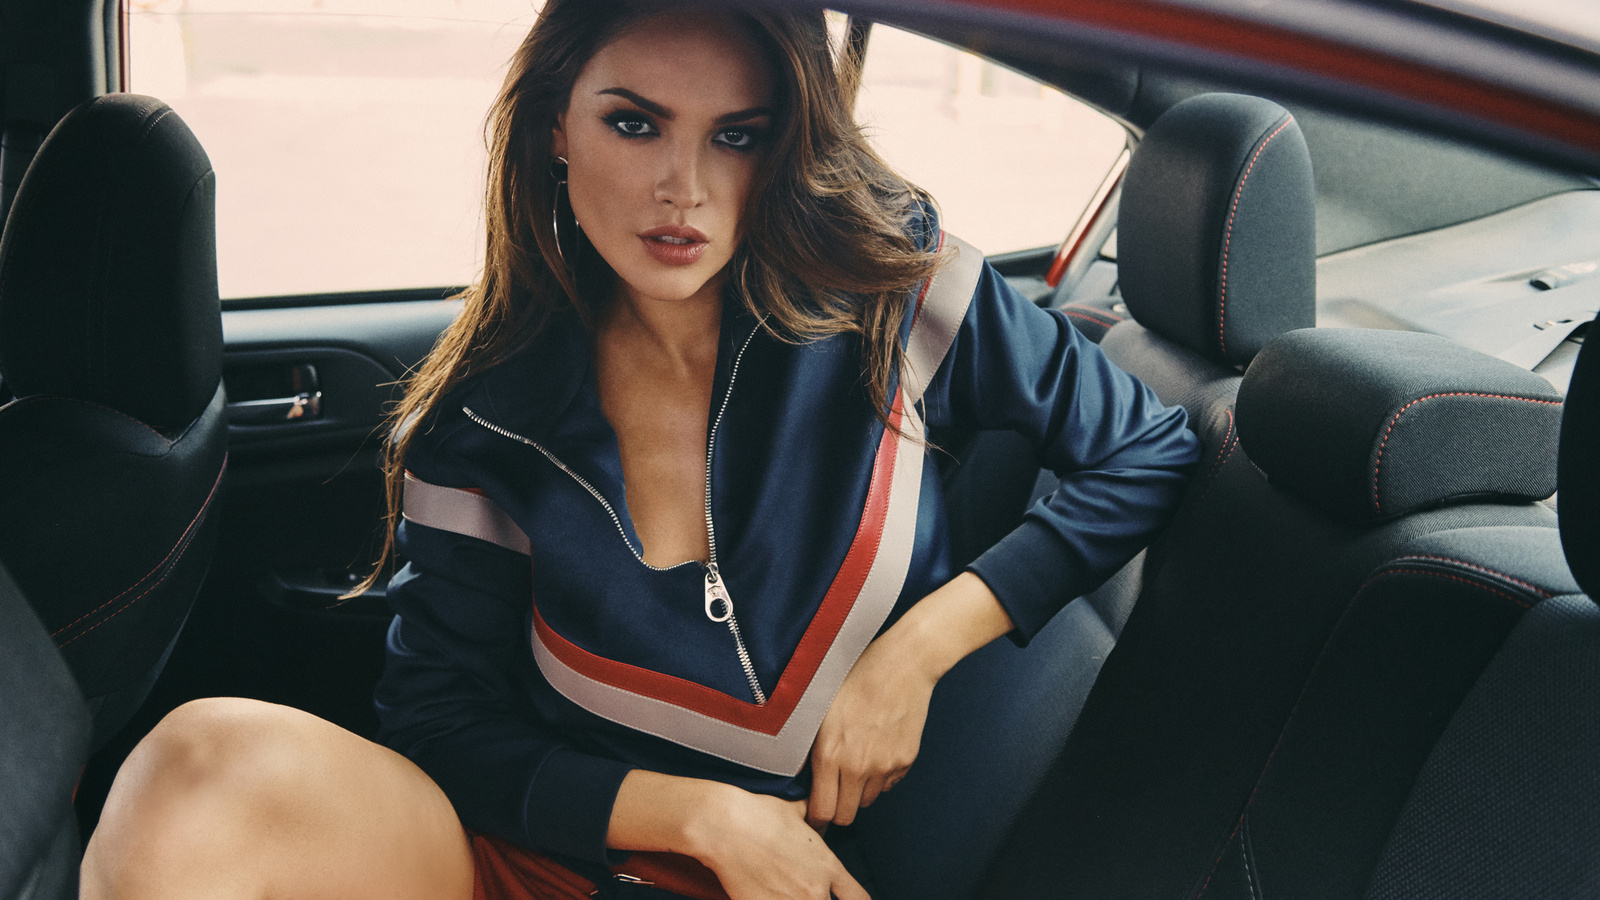 eiza-gonzalez-in-car-eb.jpg